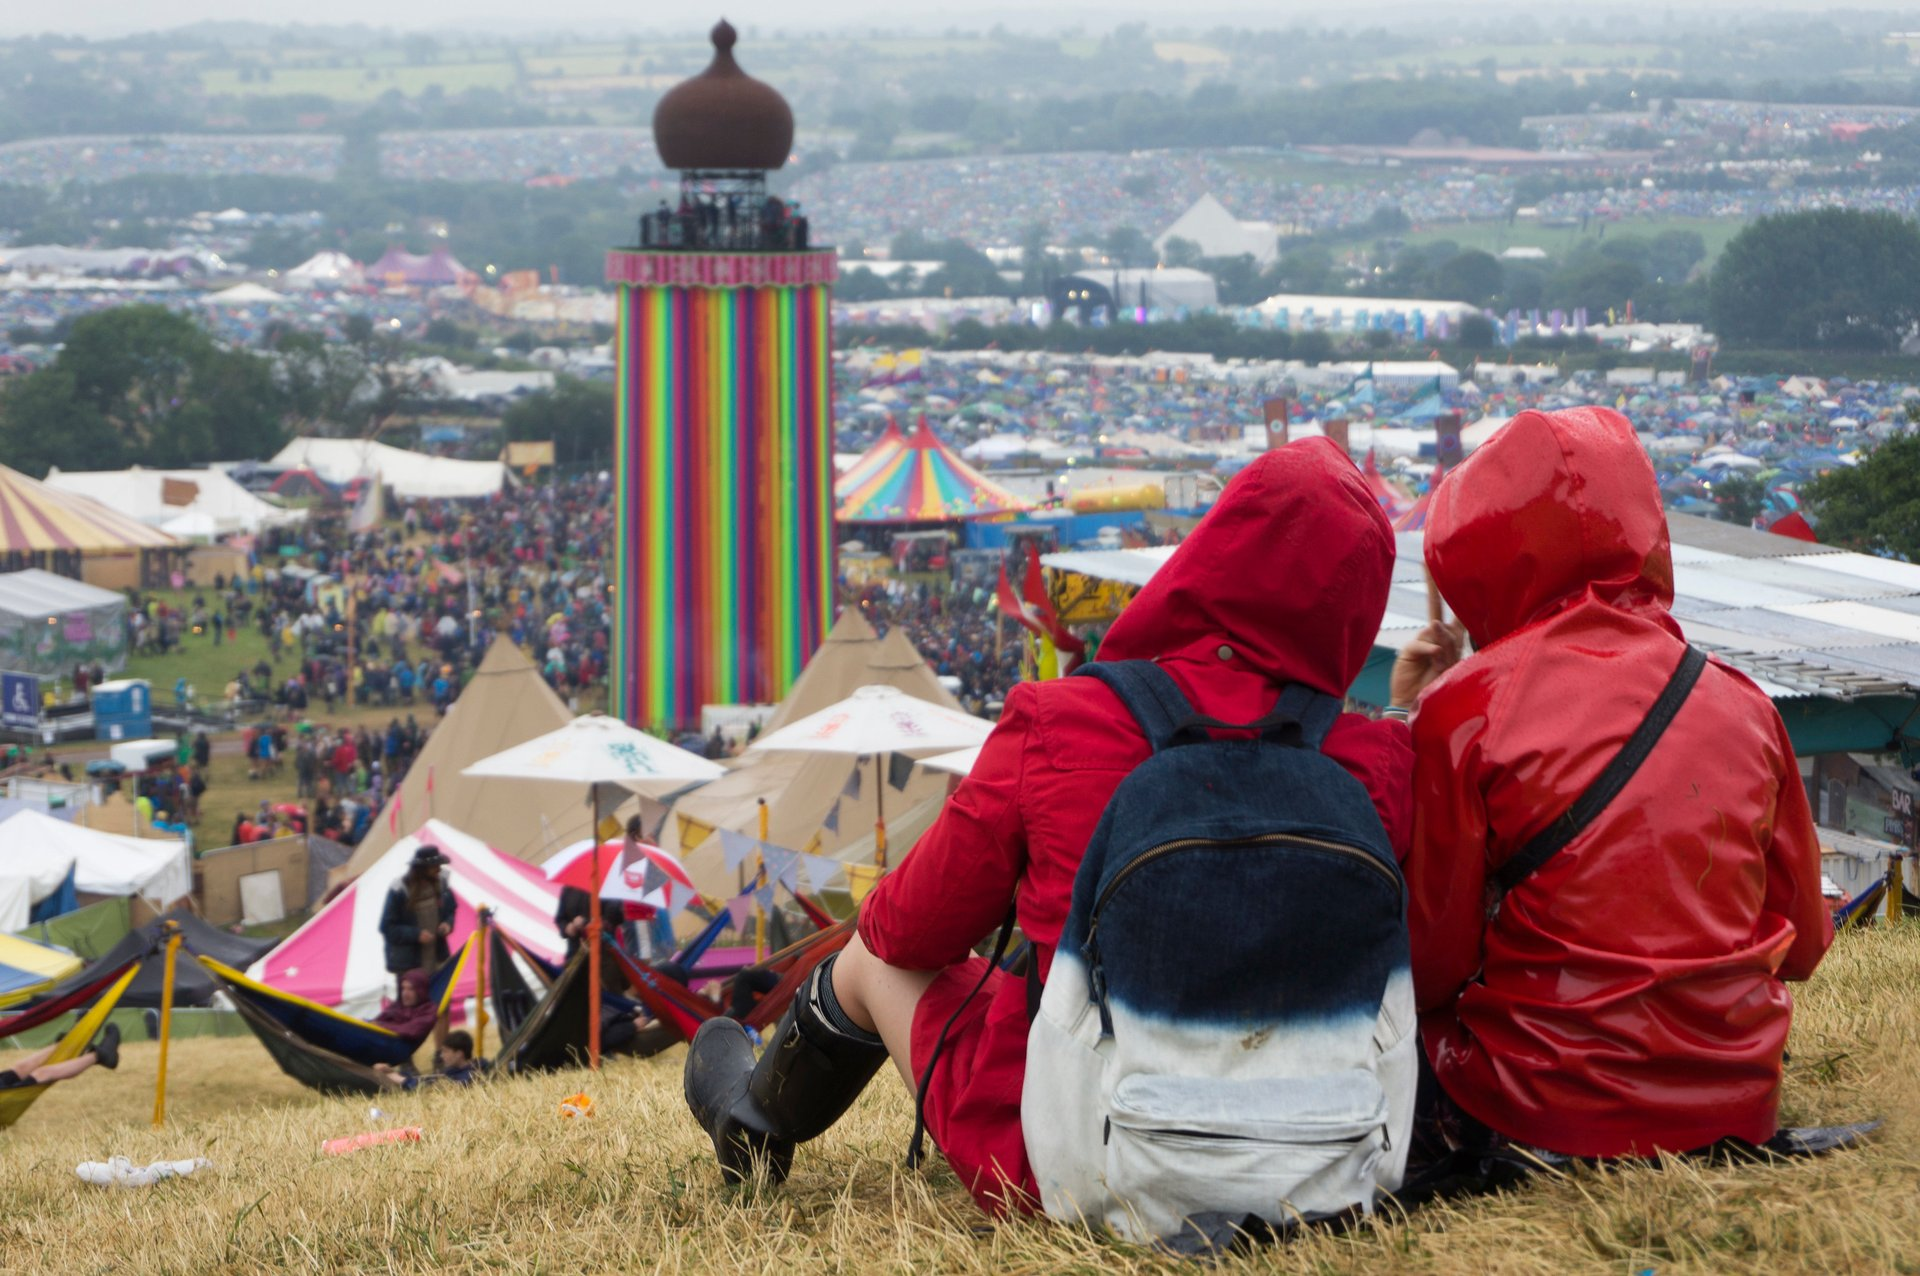 Glastonbury Festival in England 2020 - Best Time